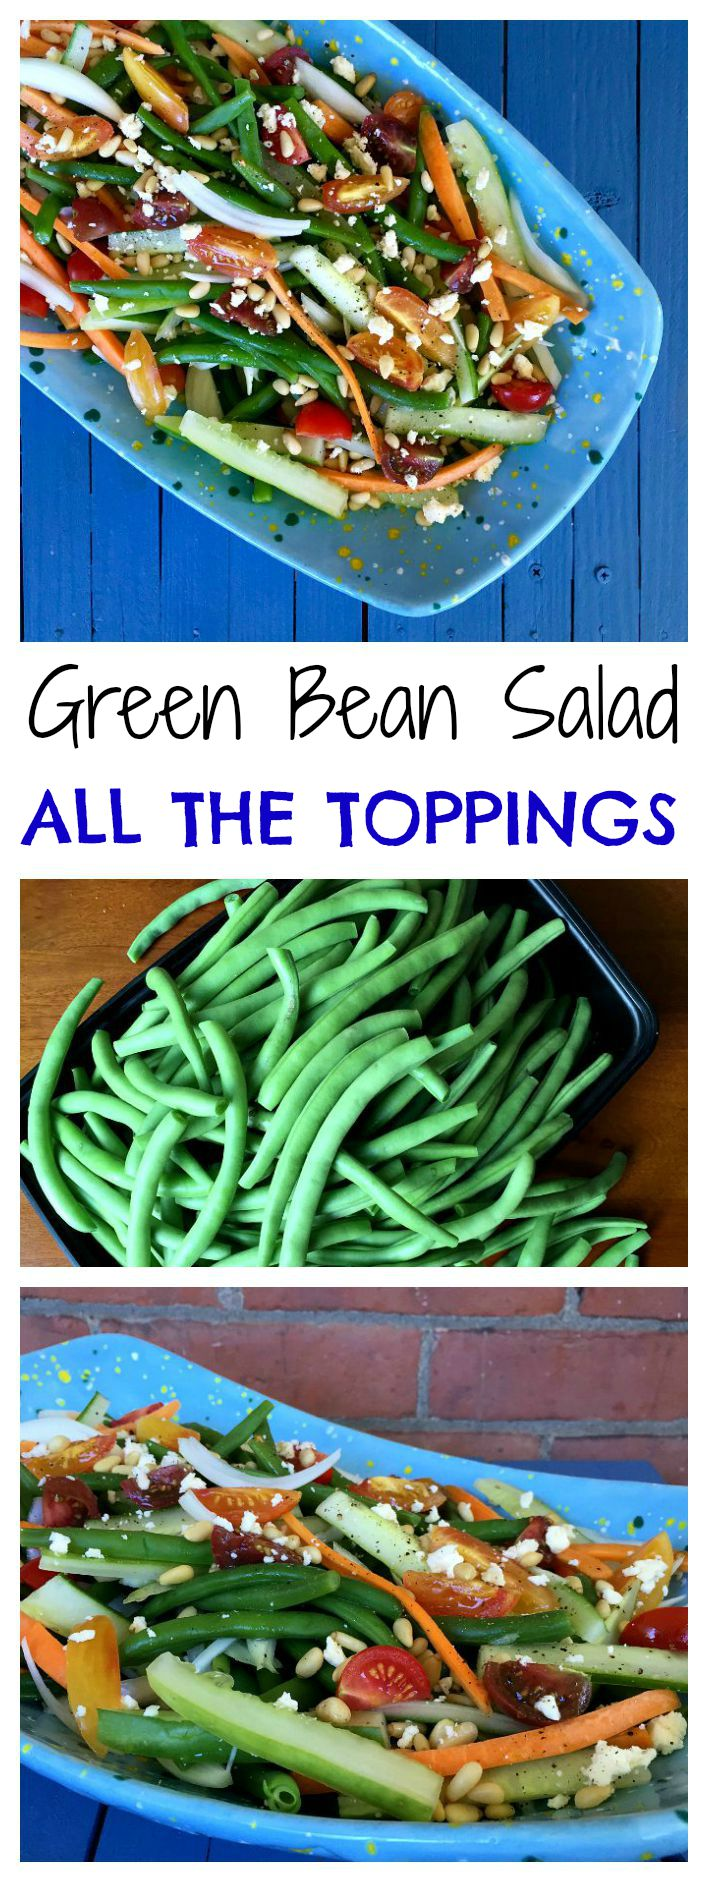 Healthy Green Bean Salad with ALL the Toppings Collage